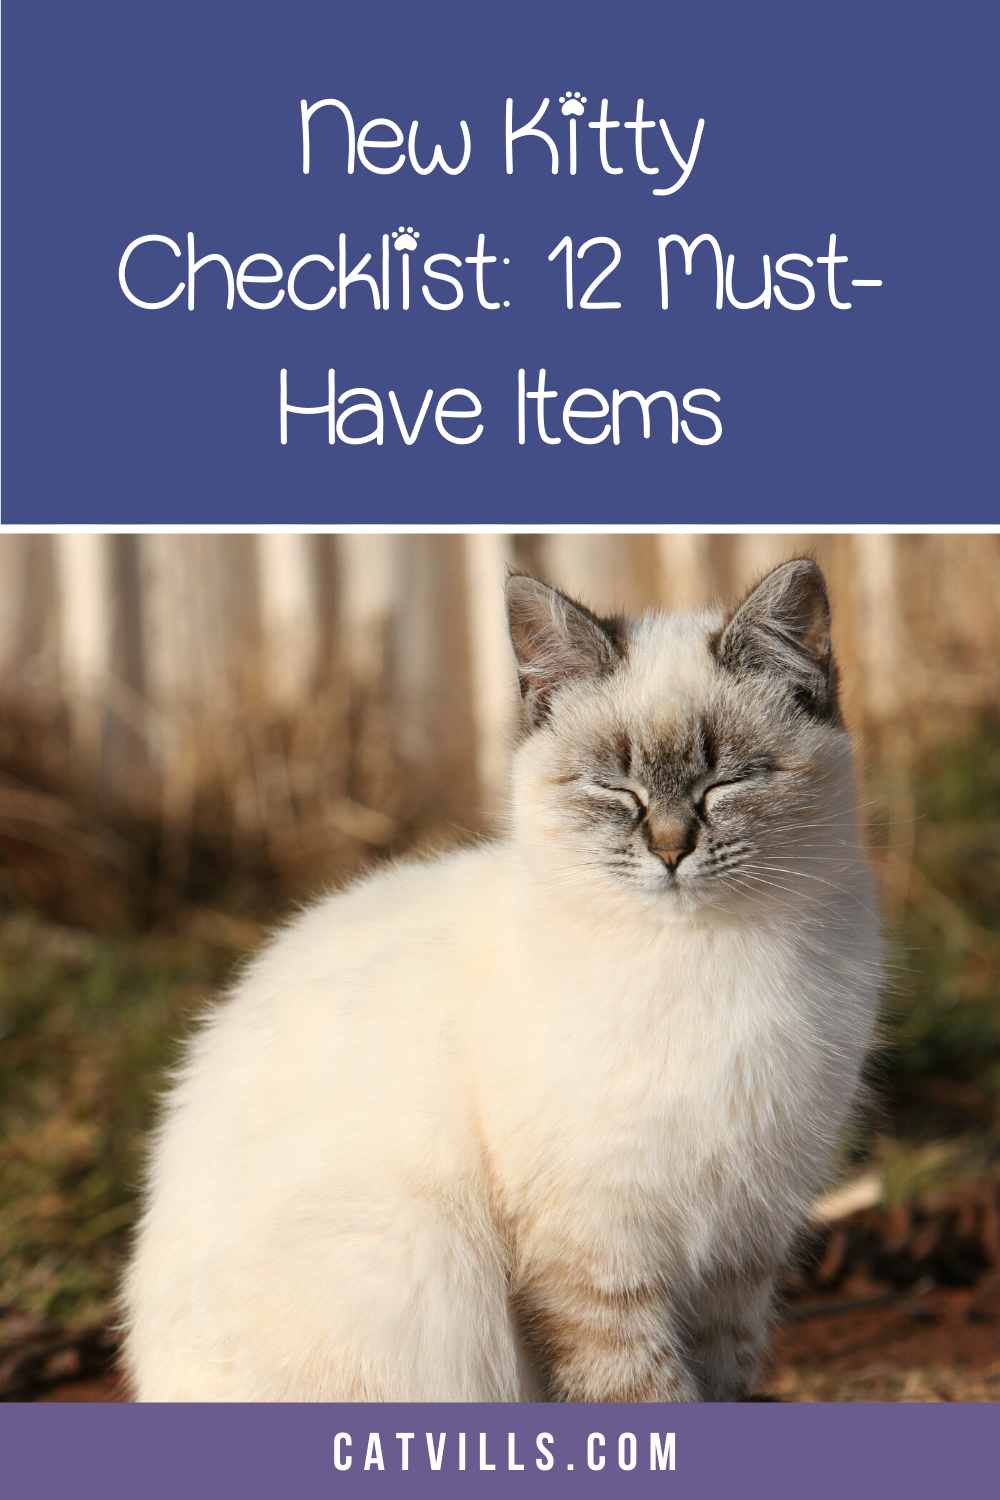 New Cat Checklist For Bringing Kitty Home In Style In 2020 Cat Checklist Cat Training Cats